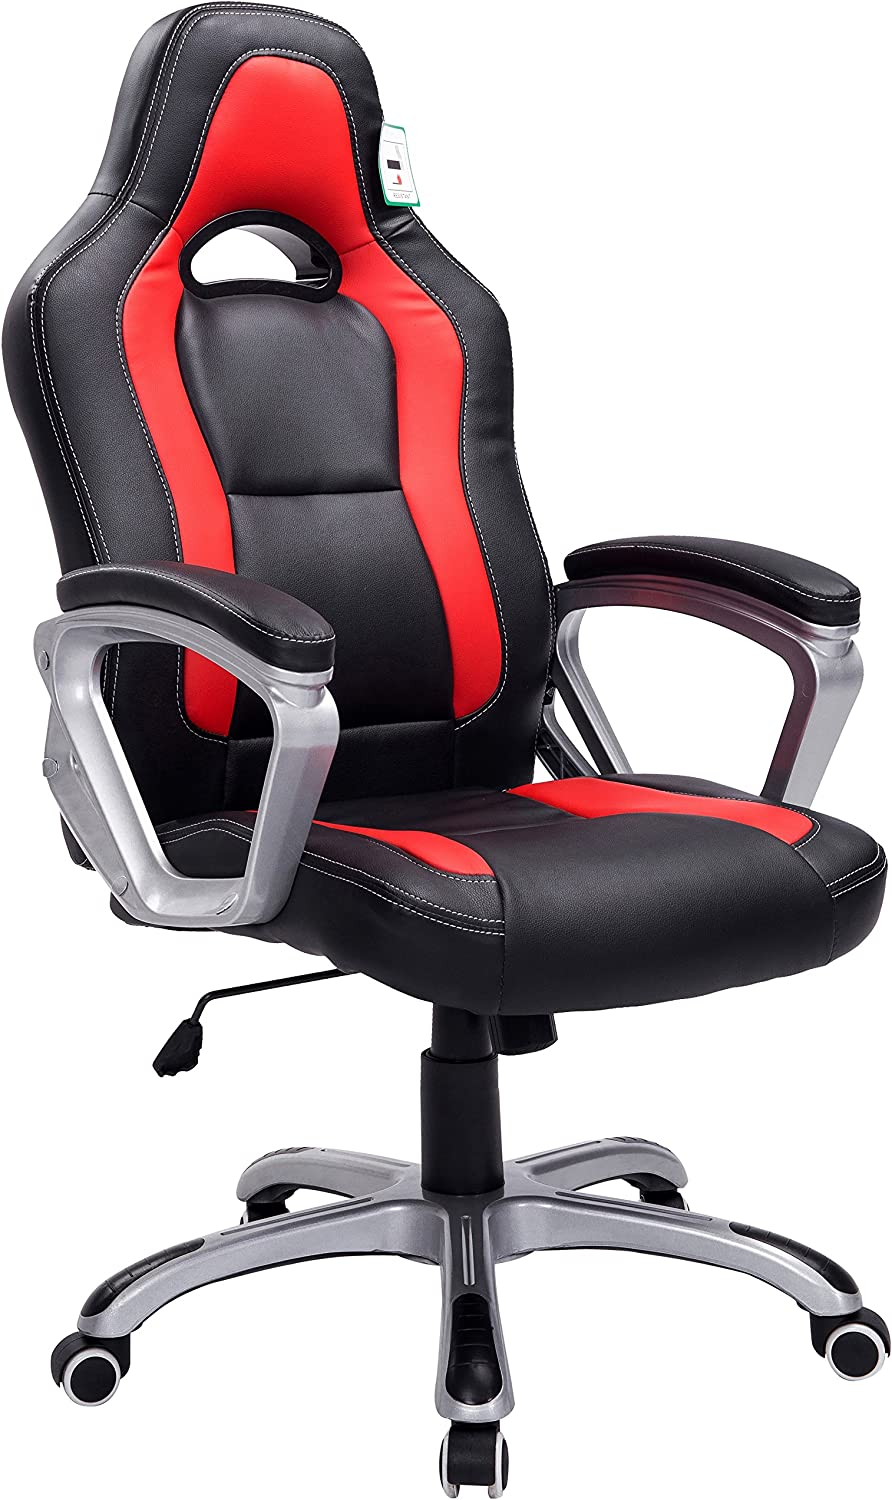 Cherry Tree Furniture Swivel Computer Chair